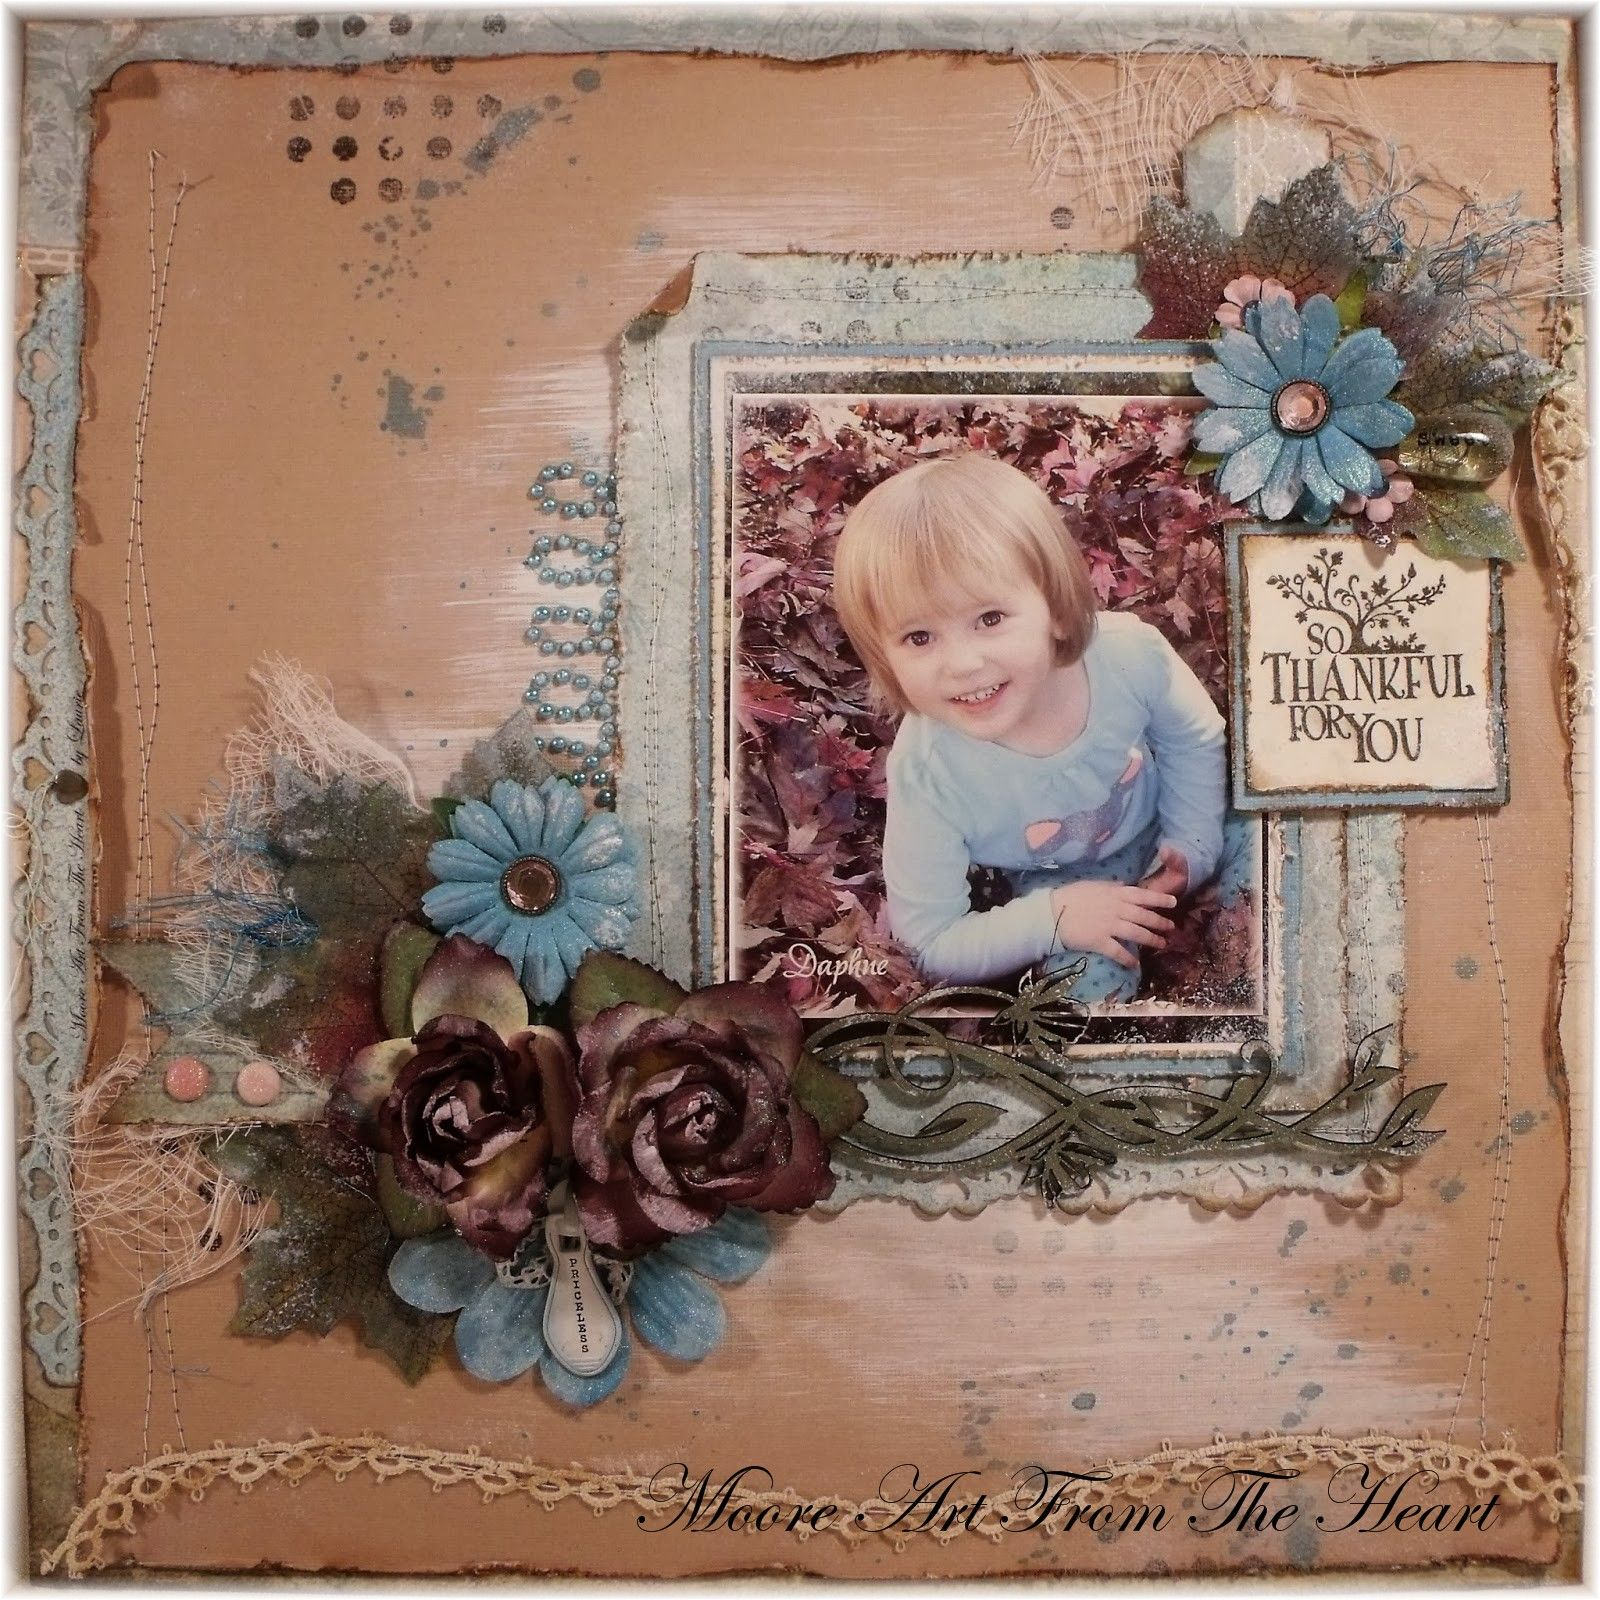 So Thankful For You Scrapbook page